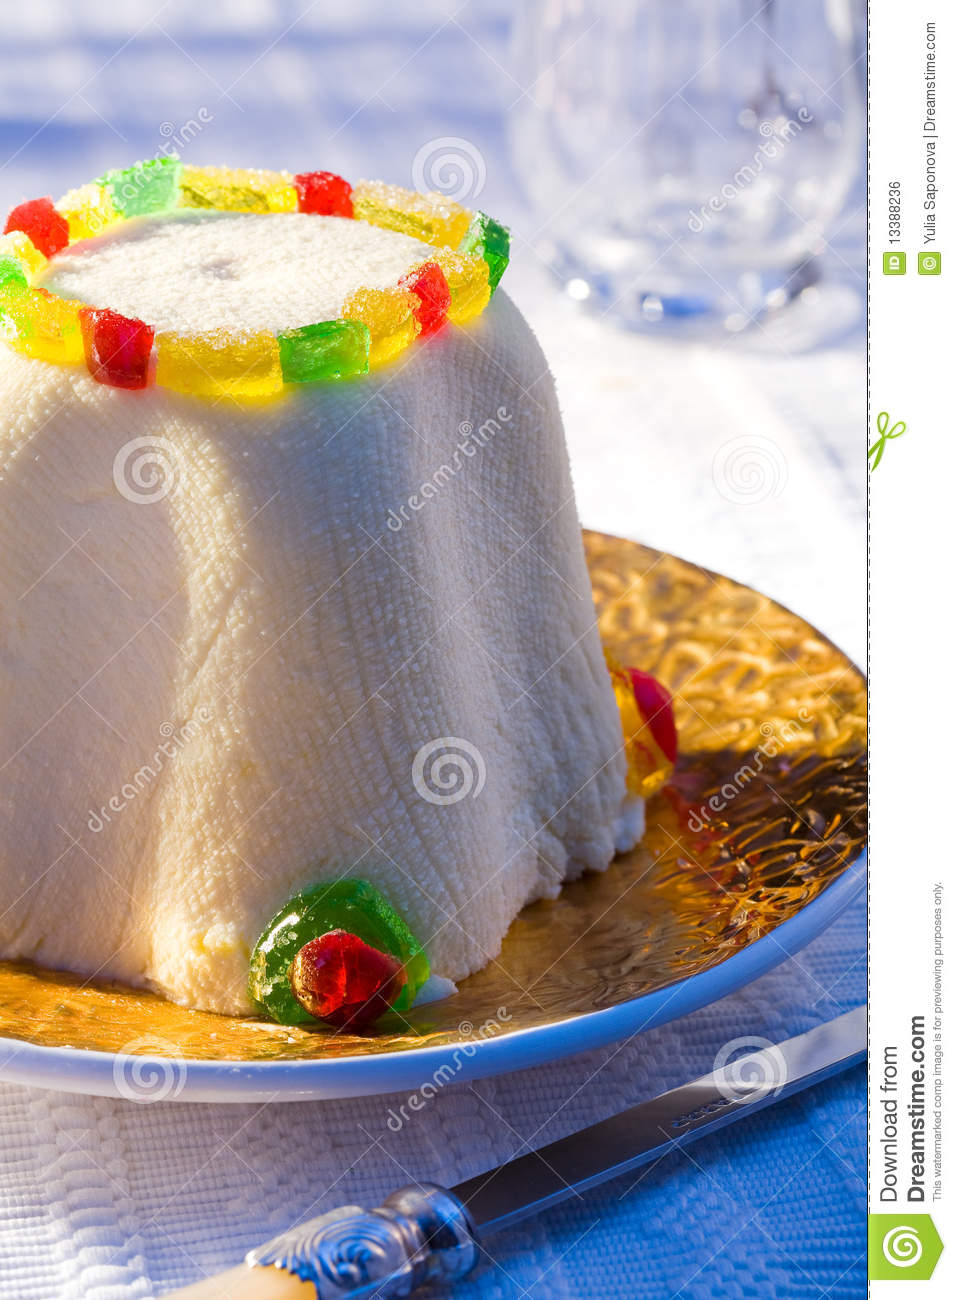 Easter Cheesecake Royalty Free Stock Image - Image: 13388236